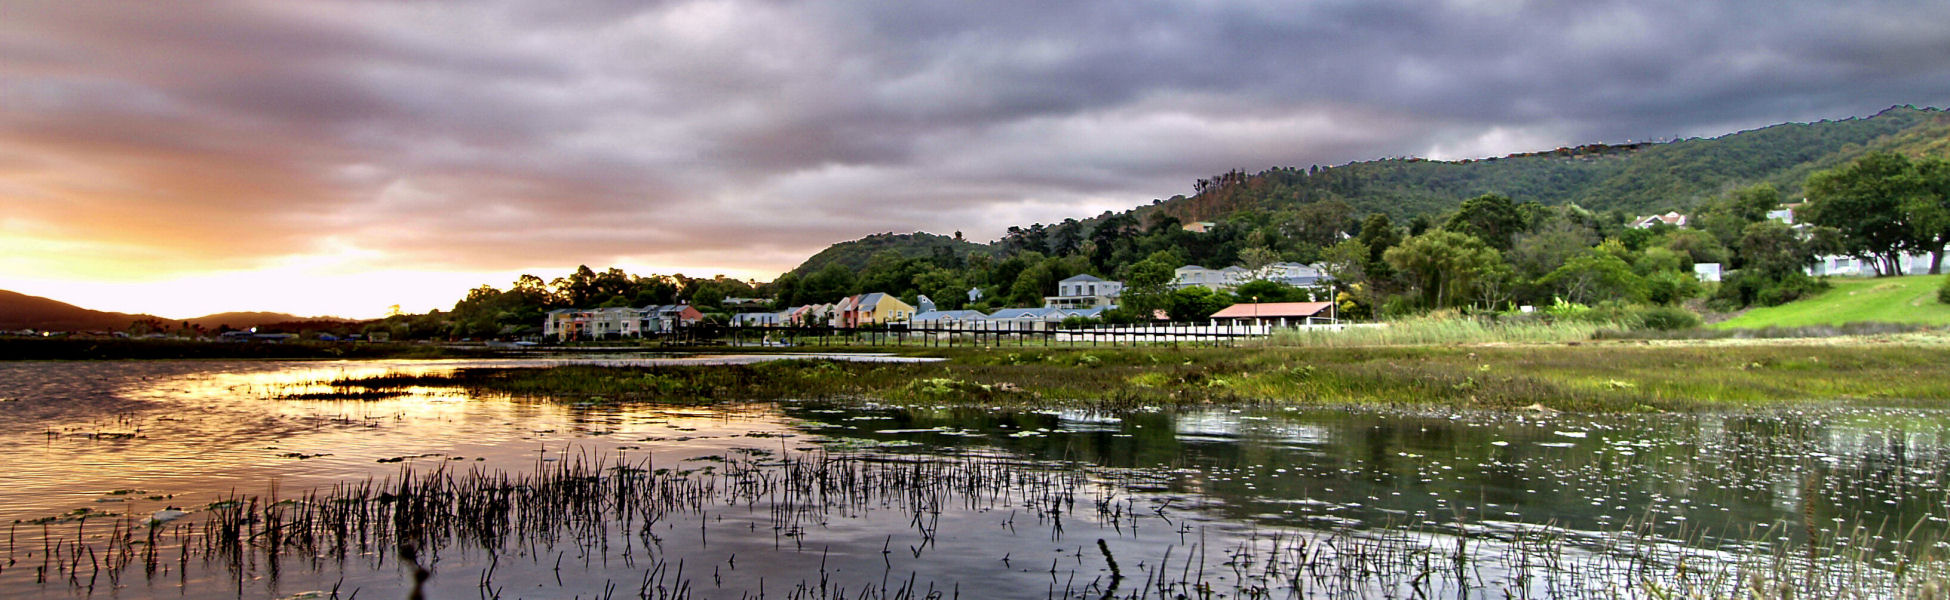 Monks Caravan Park Accommodation in Knysna, Garden Route